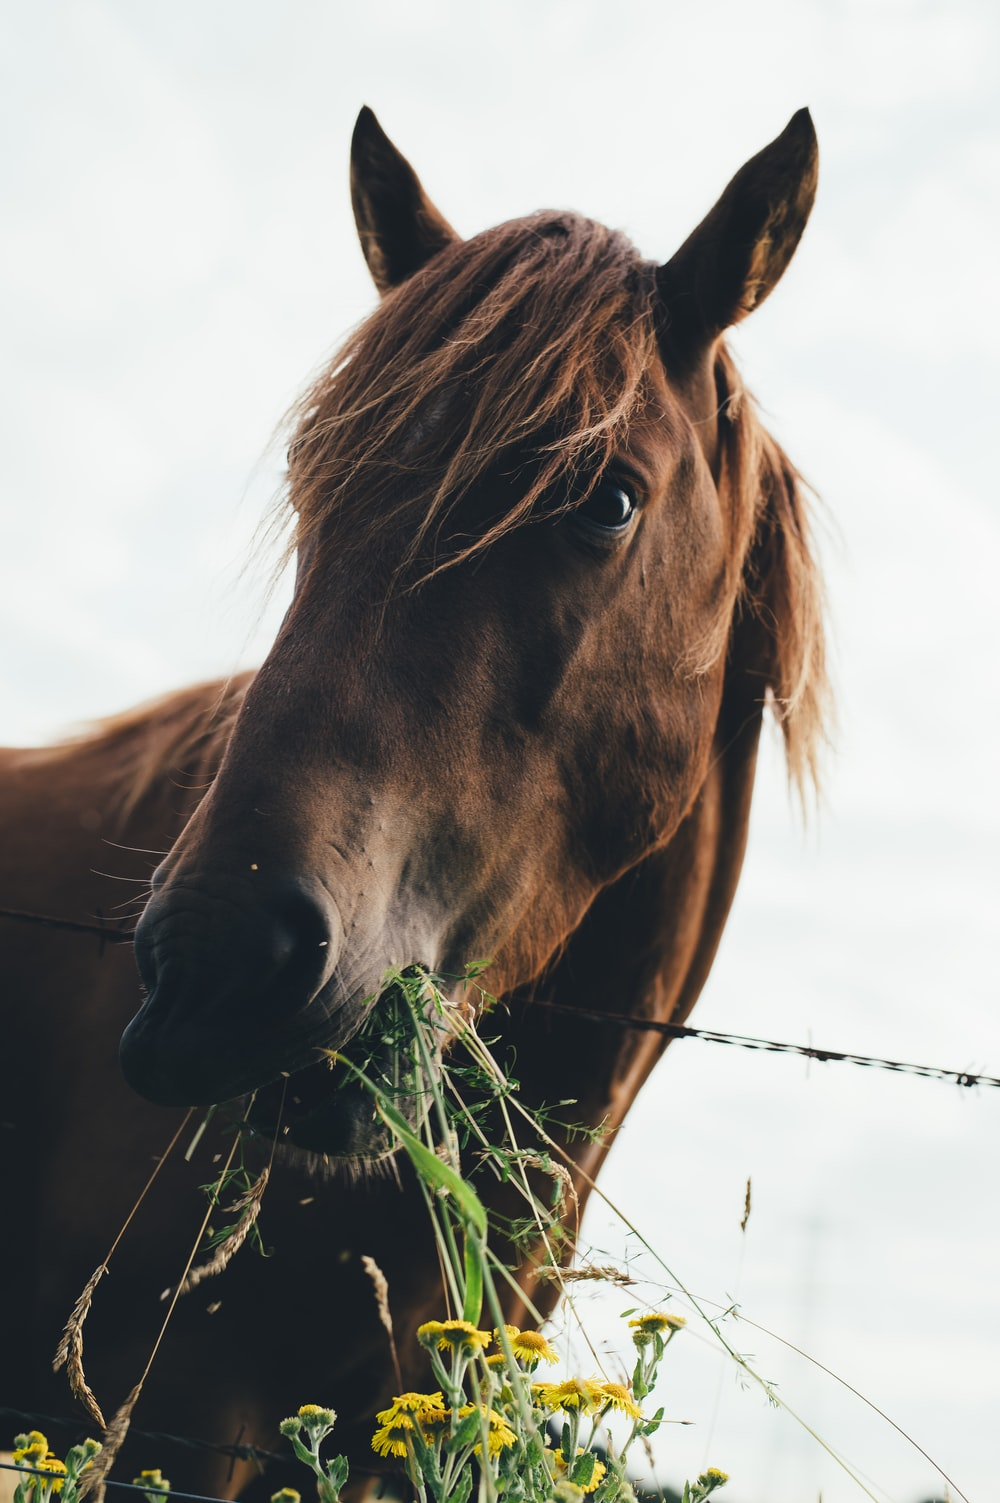 brown horse eating grass during cloudy sky